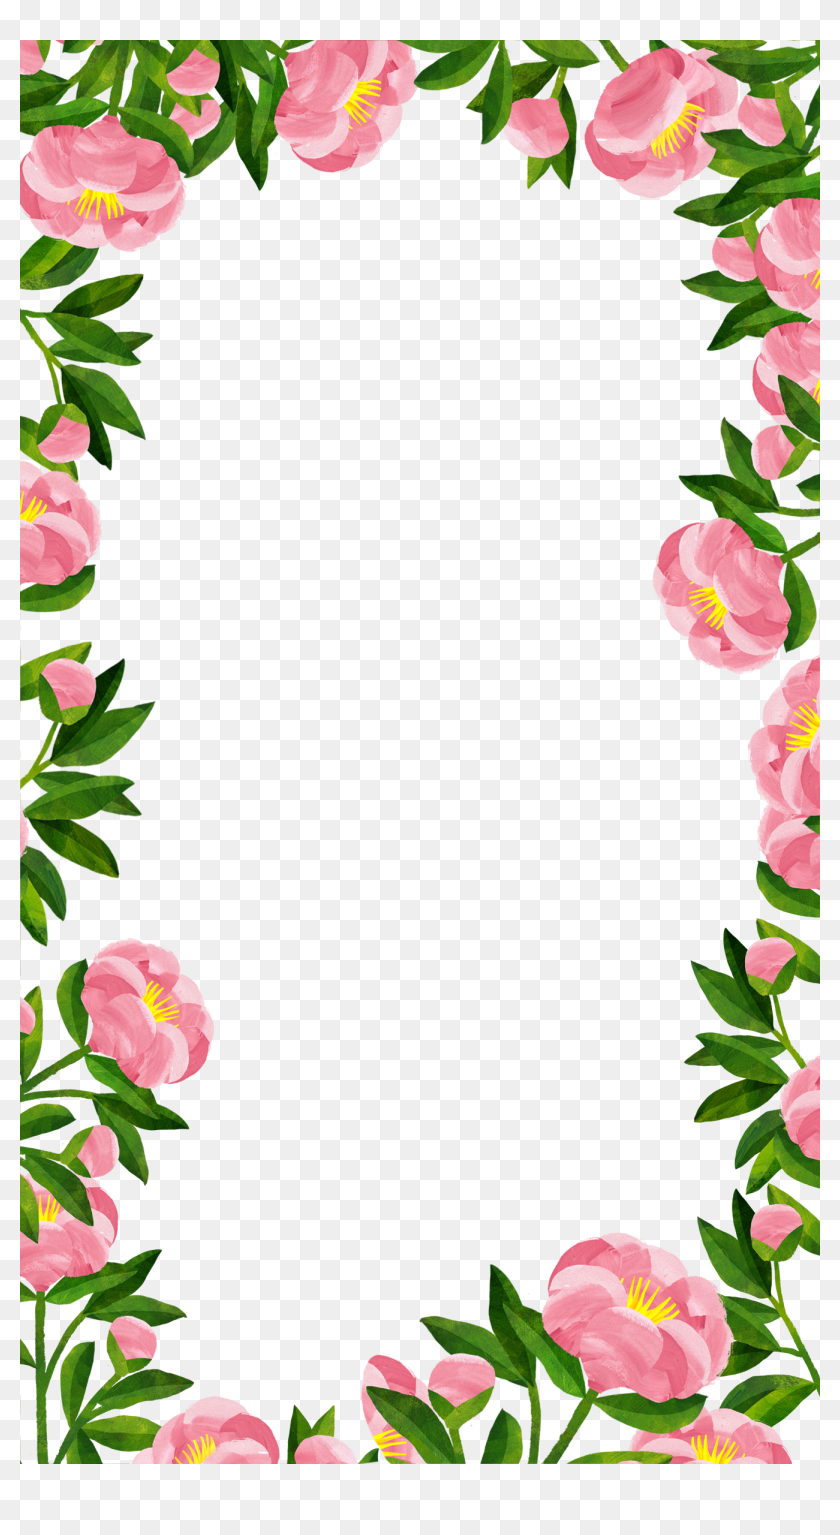 Snapchat Filters Clipart Floral - Garden Roses, HD Png